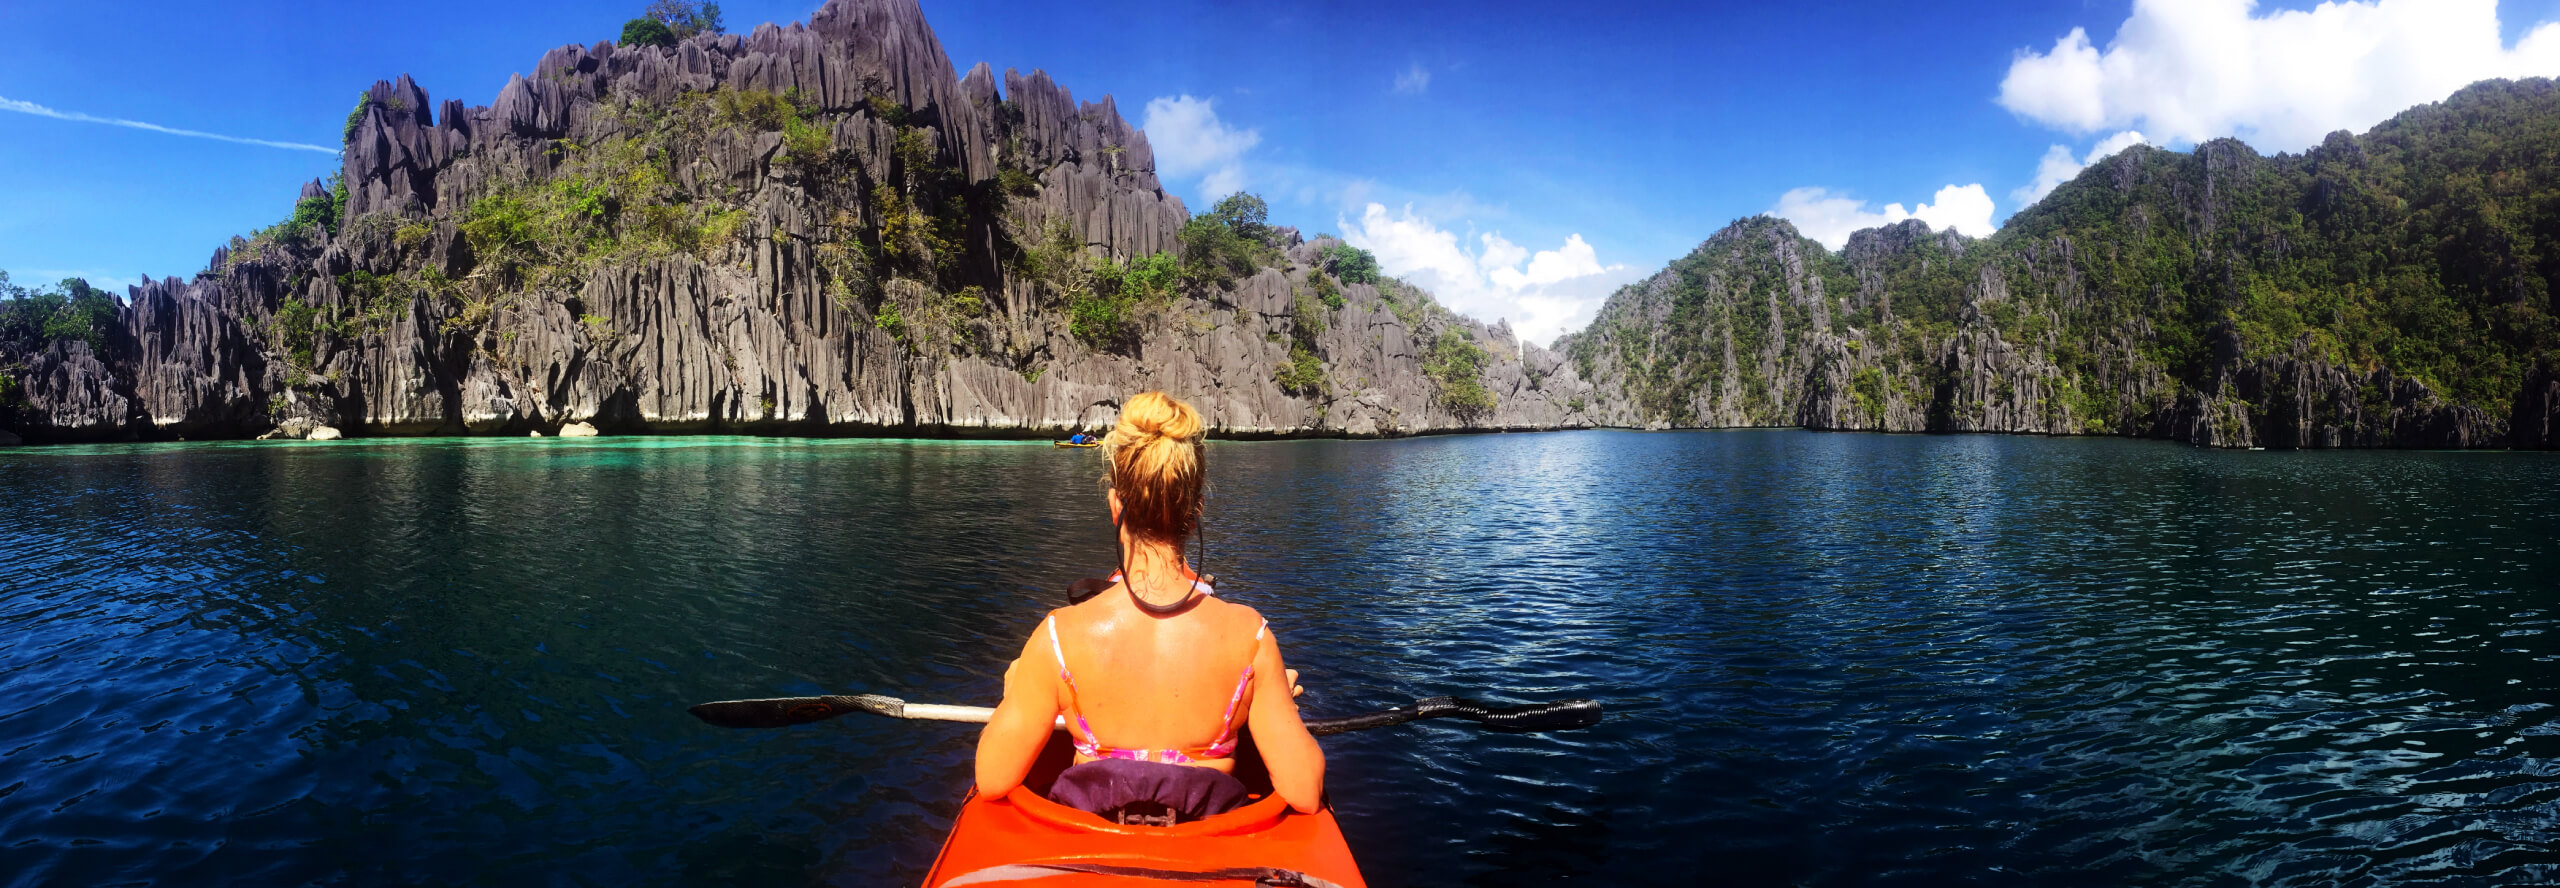 Ultimate Coron Banca & Kayak Day Trip